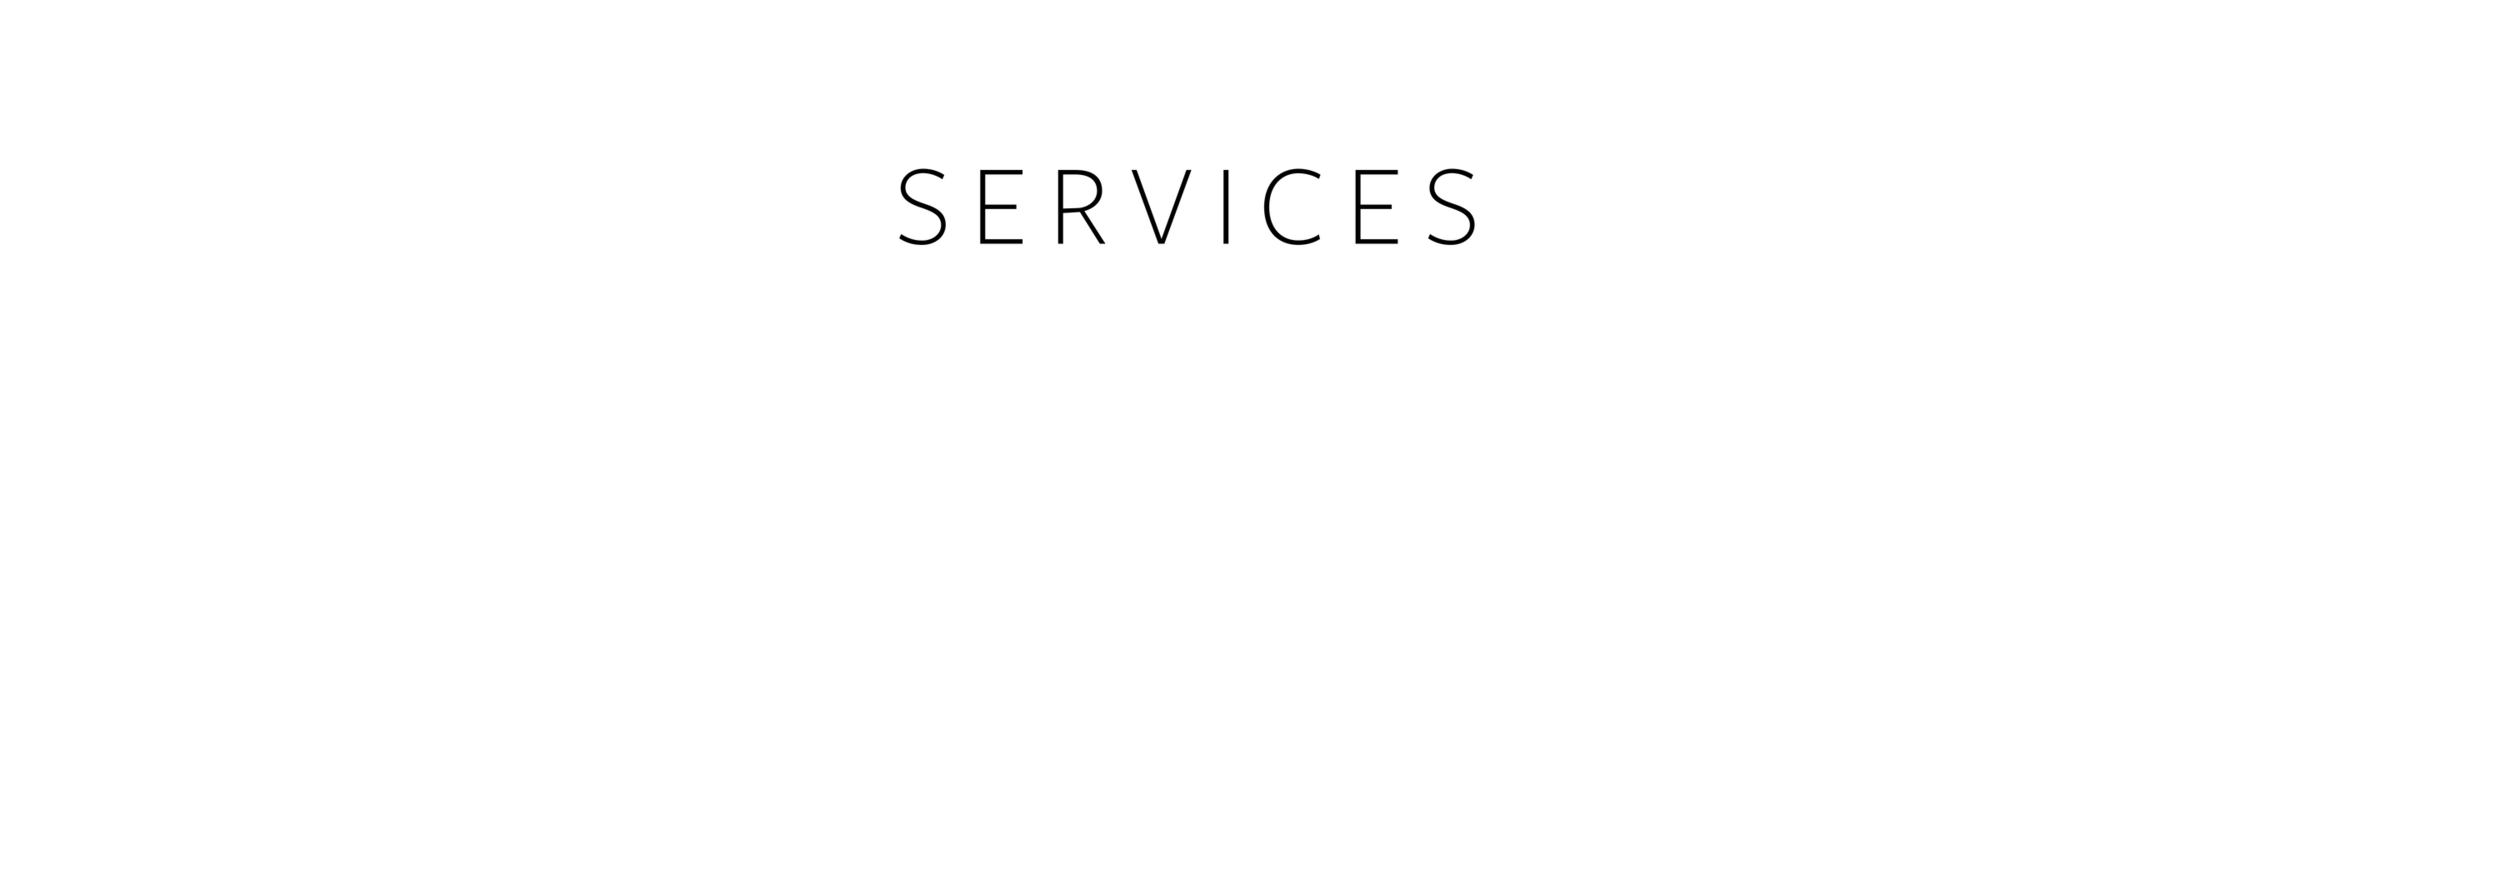 Services (12).png